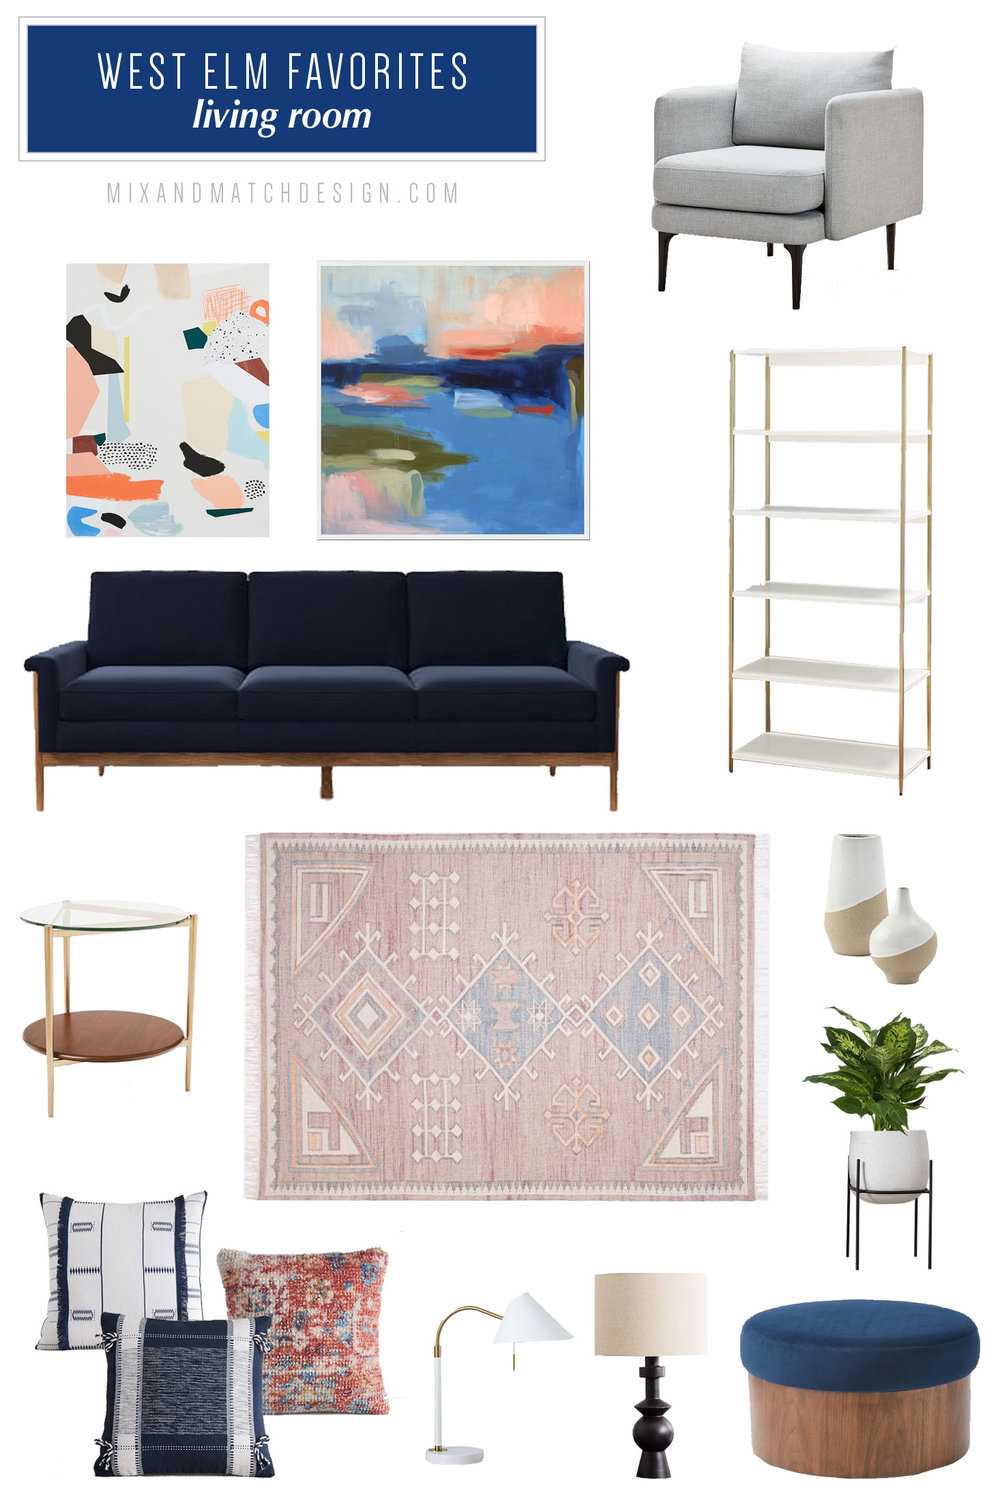 A roundup of the furniture and decor that caught my eye recently at West Elm. If you're looking for recommendations for mid-century modern, industrial, and boho items for your living room, be sure to check out this blog post with tons of ideas for decorating your home.